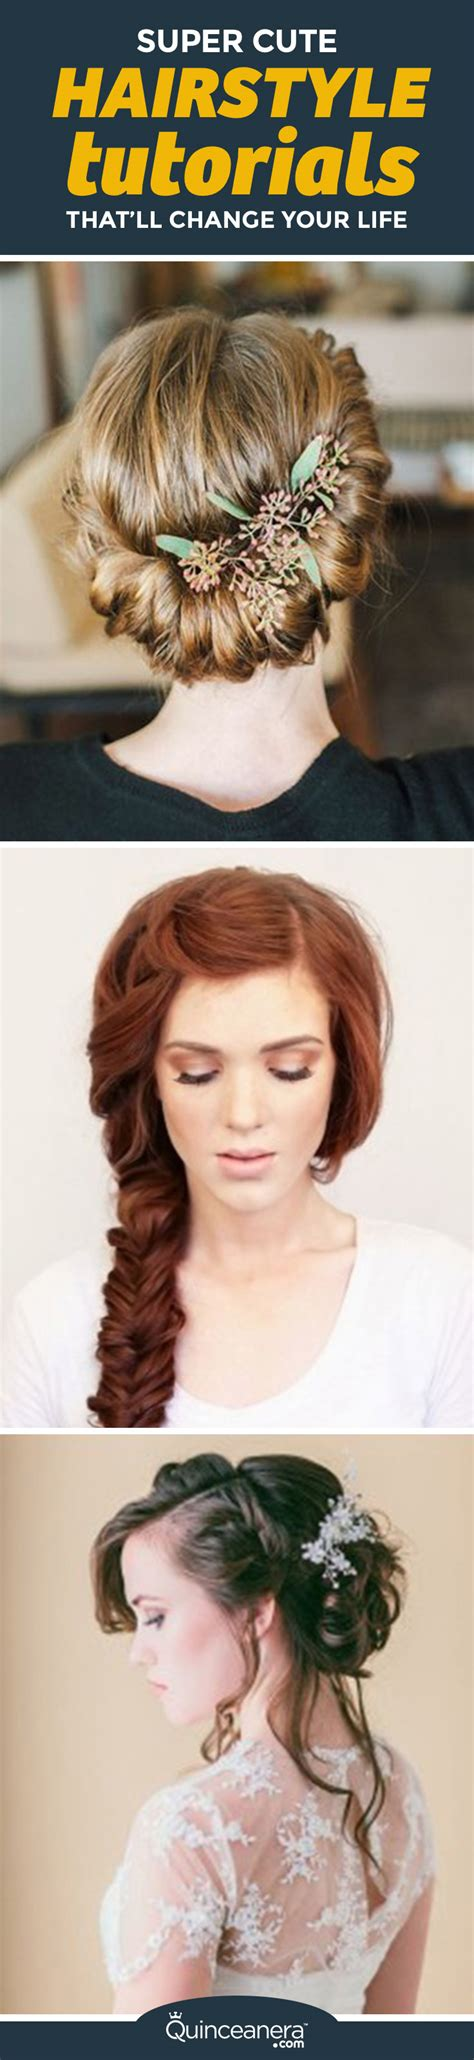 cute hairstyles no hairspray super cute hairstyle tutorials that ll change your life